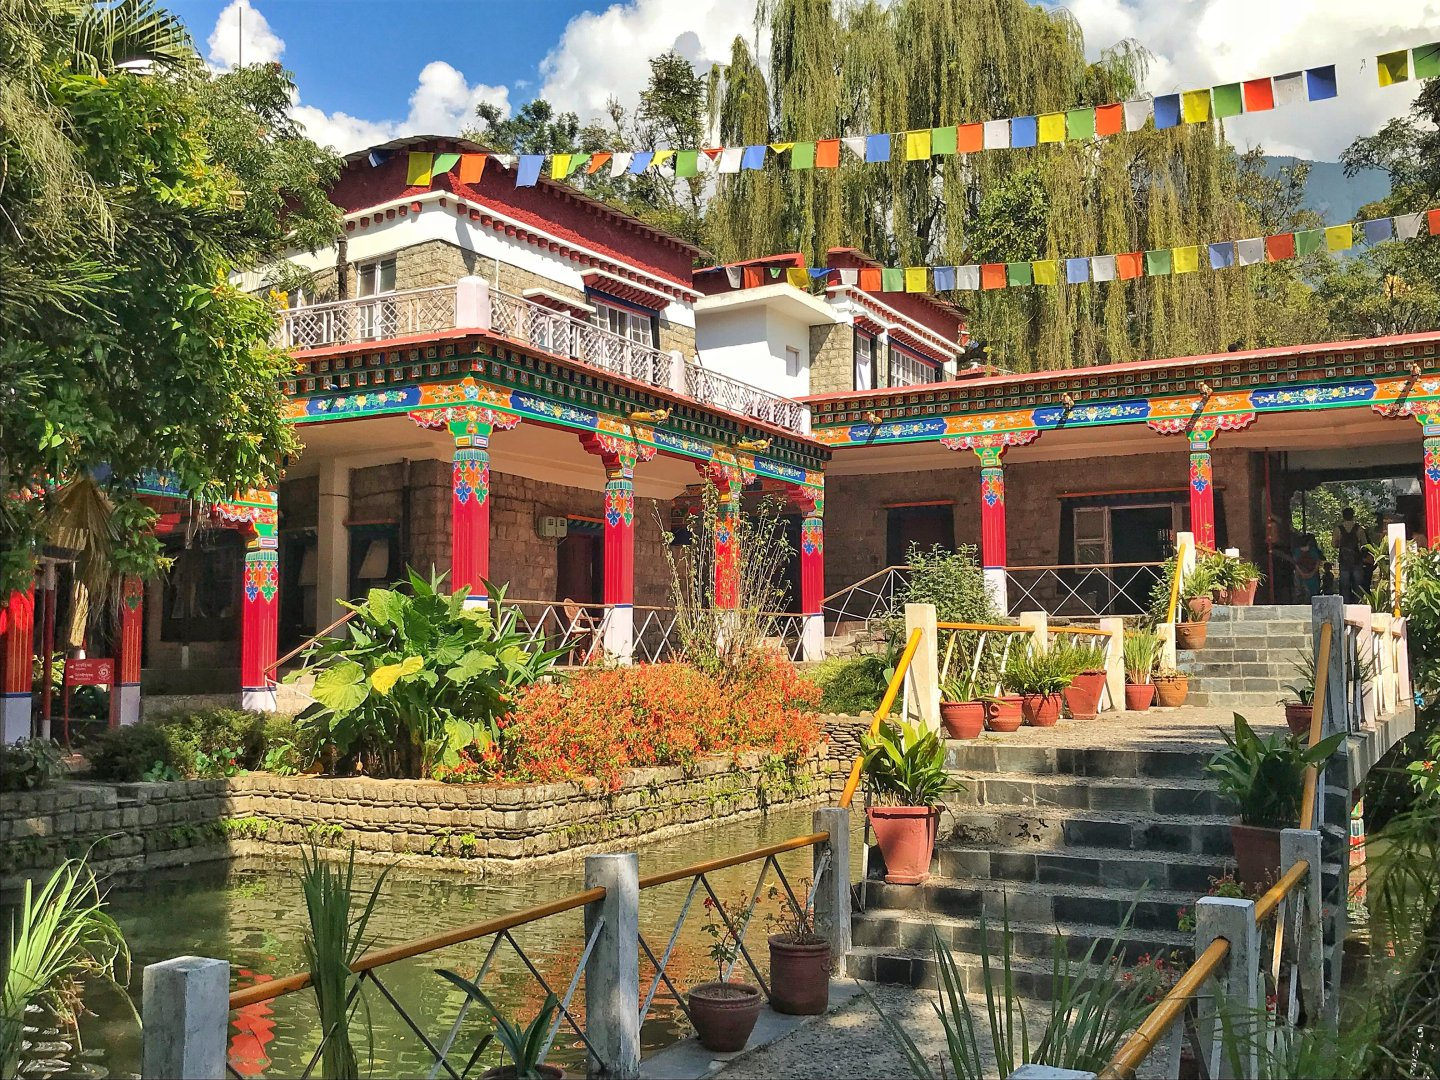 Hill Station Beauty Of Dharamsala India The Travel Blog